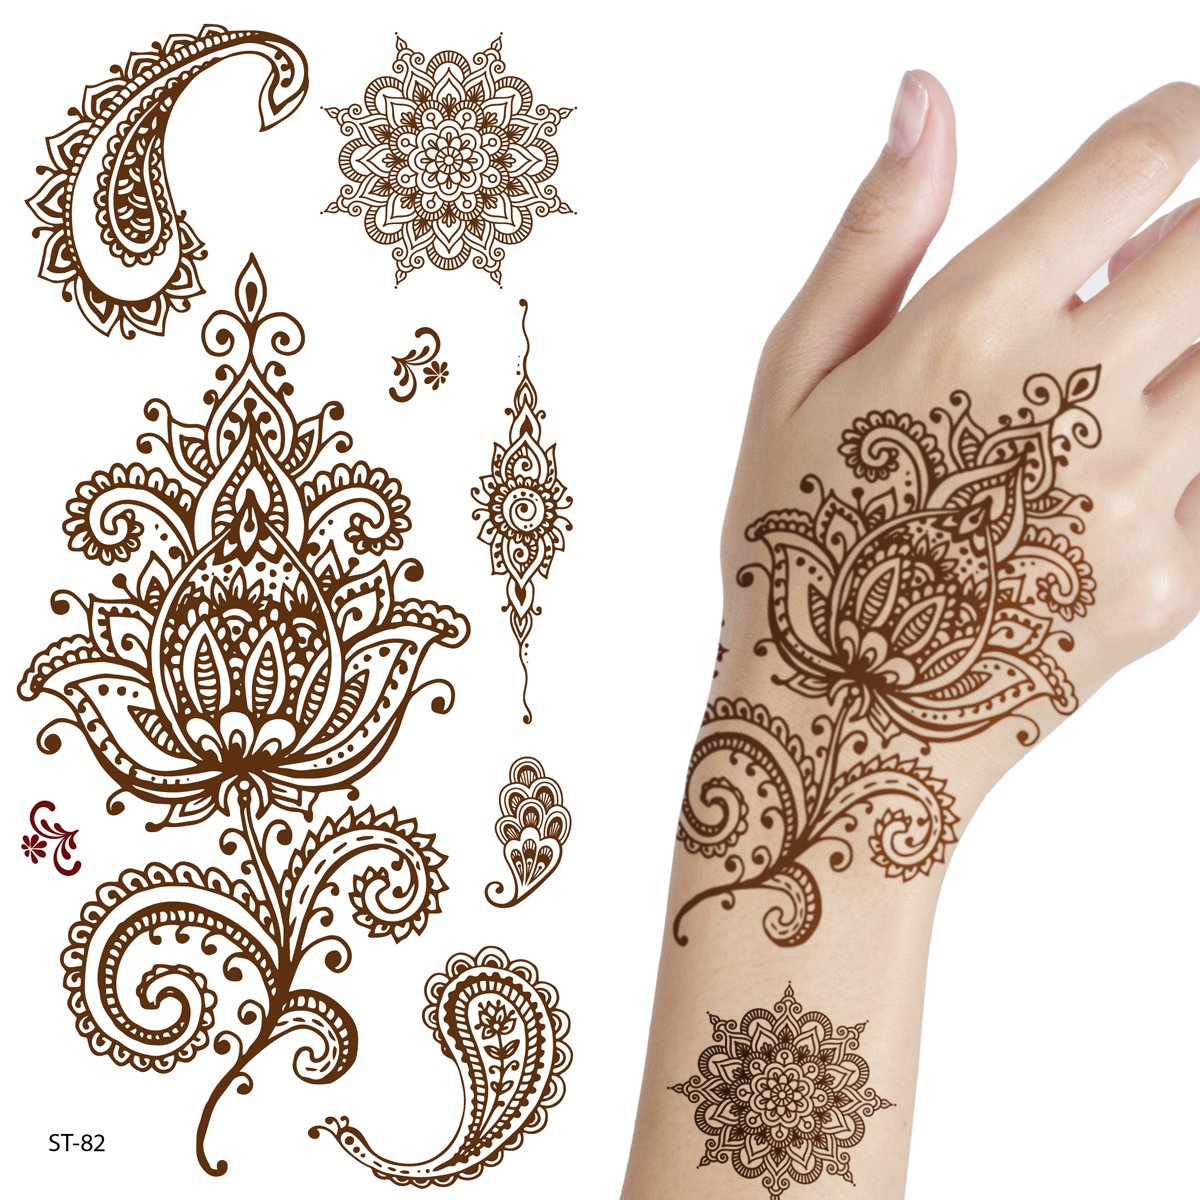 Henna Tattoo Kaufen Amazon: Amazon.com : Adecco LLC 6 Sheets Flower Temporary Henna